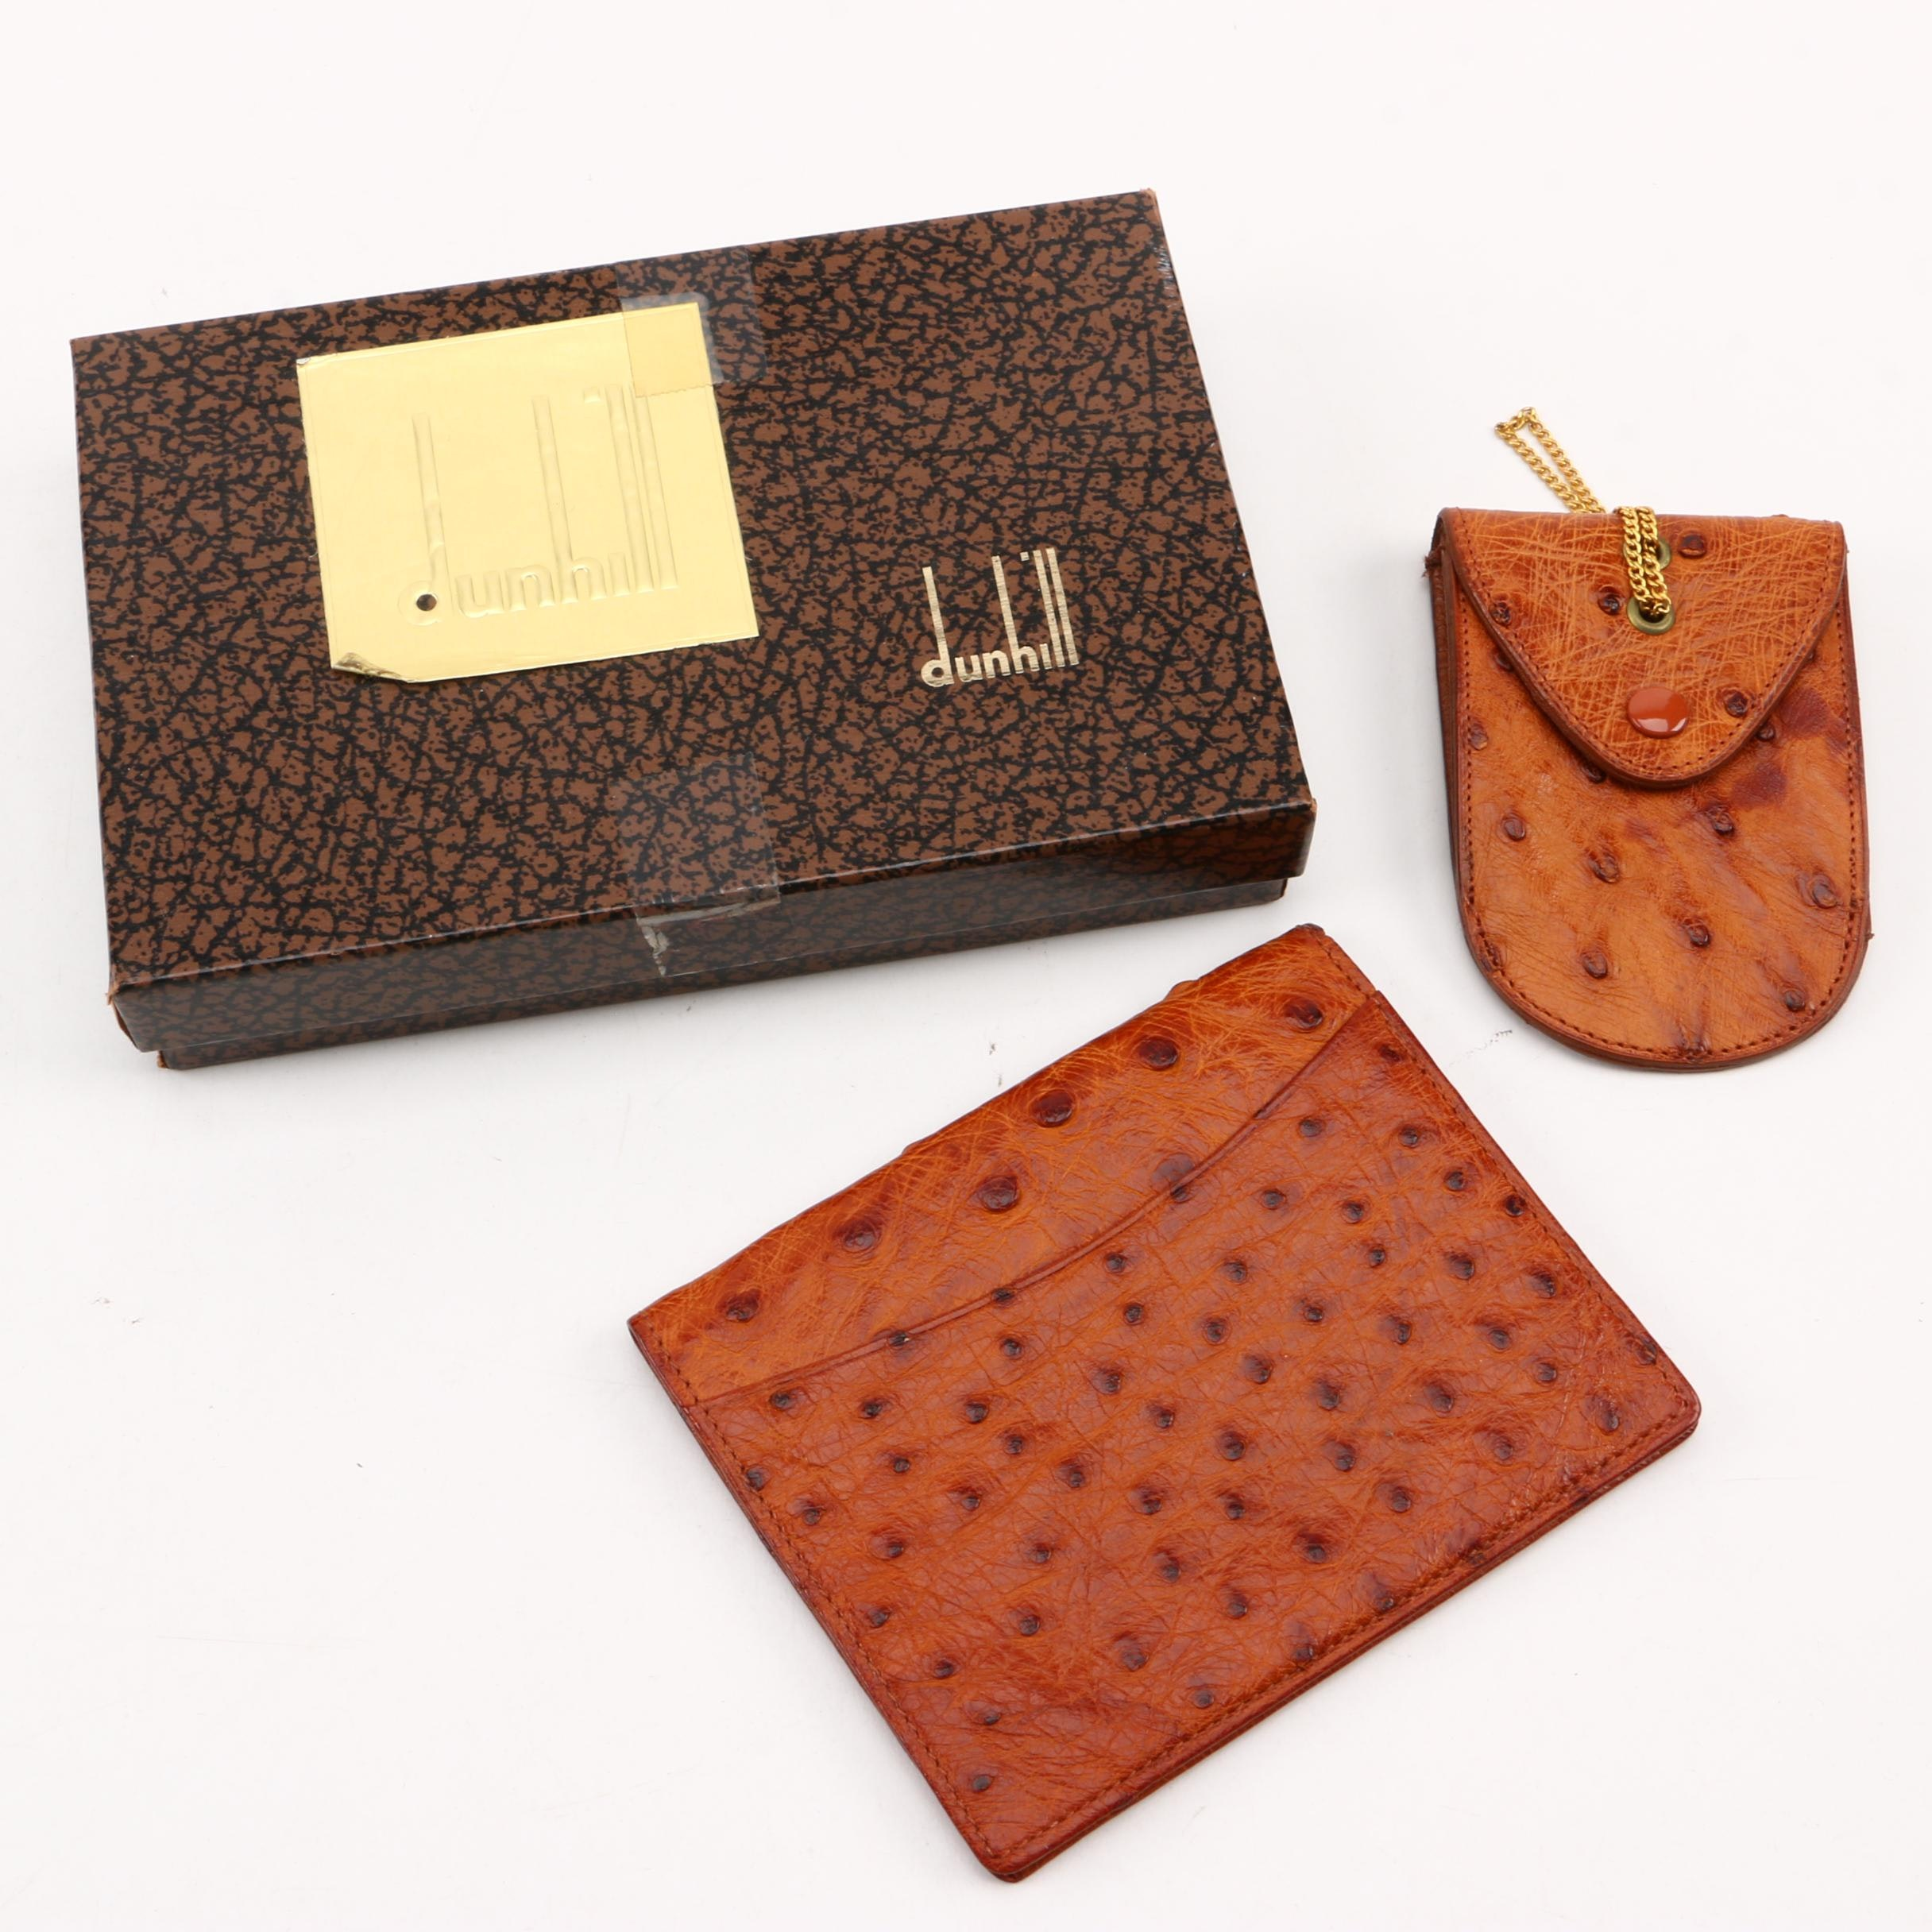 Dunhill Ostrich Leather Wallet and Coin Purse